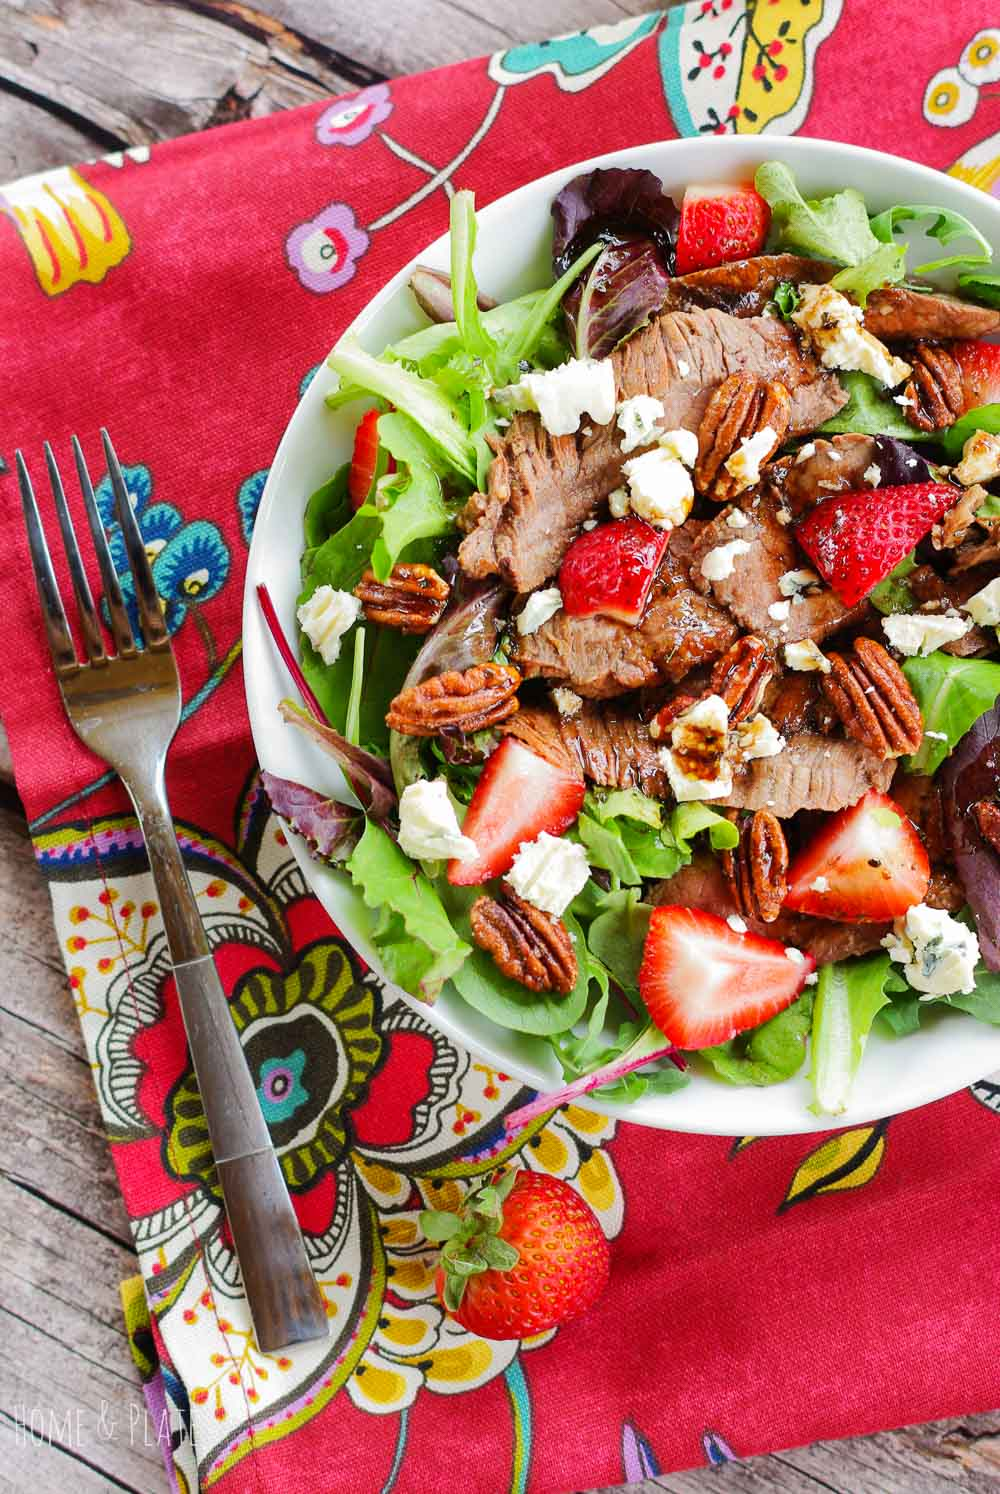 A Flank Steak Salad next to a fork